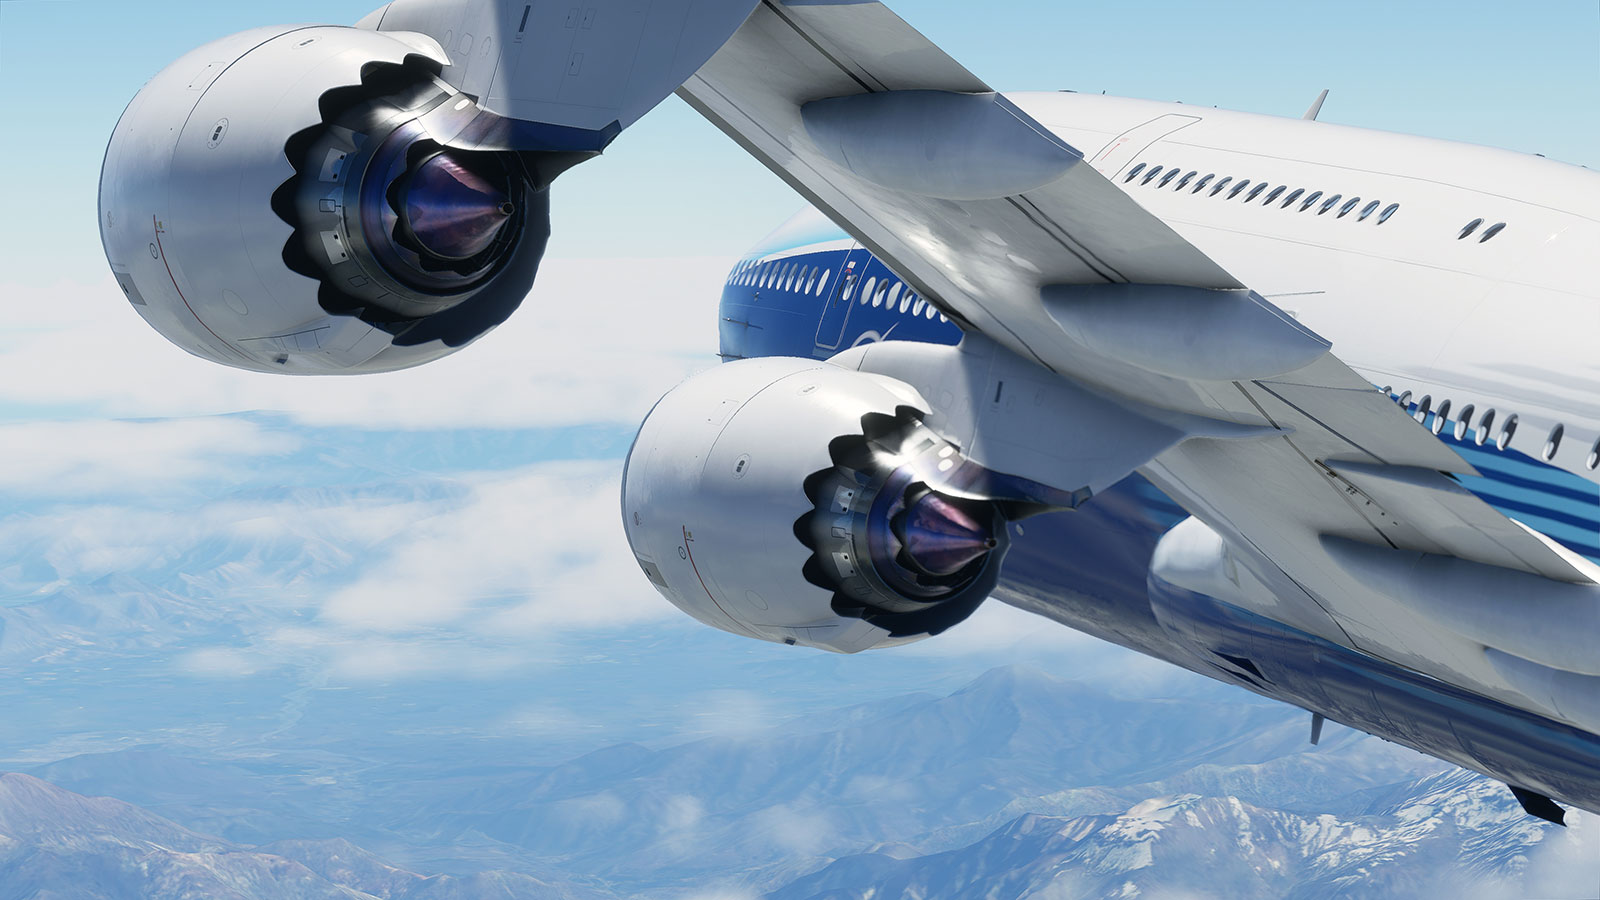 747 engine and wing at high altitude.